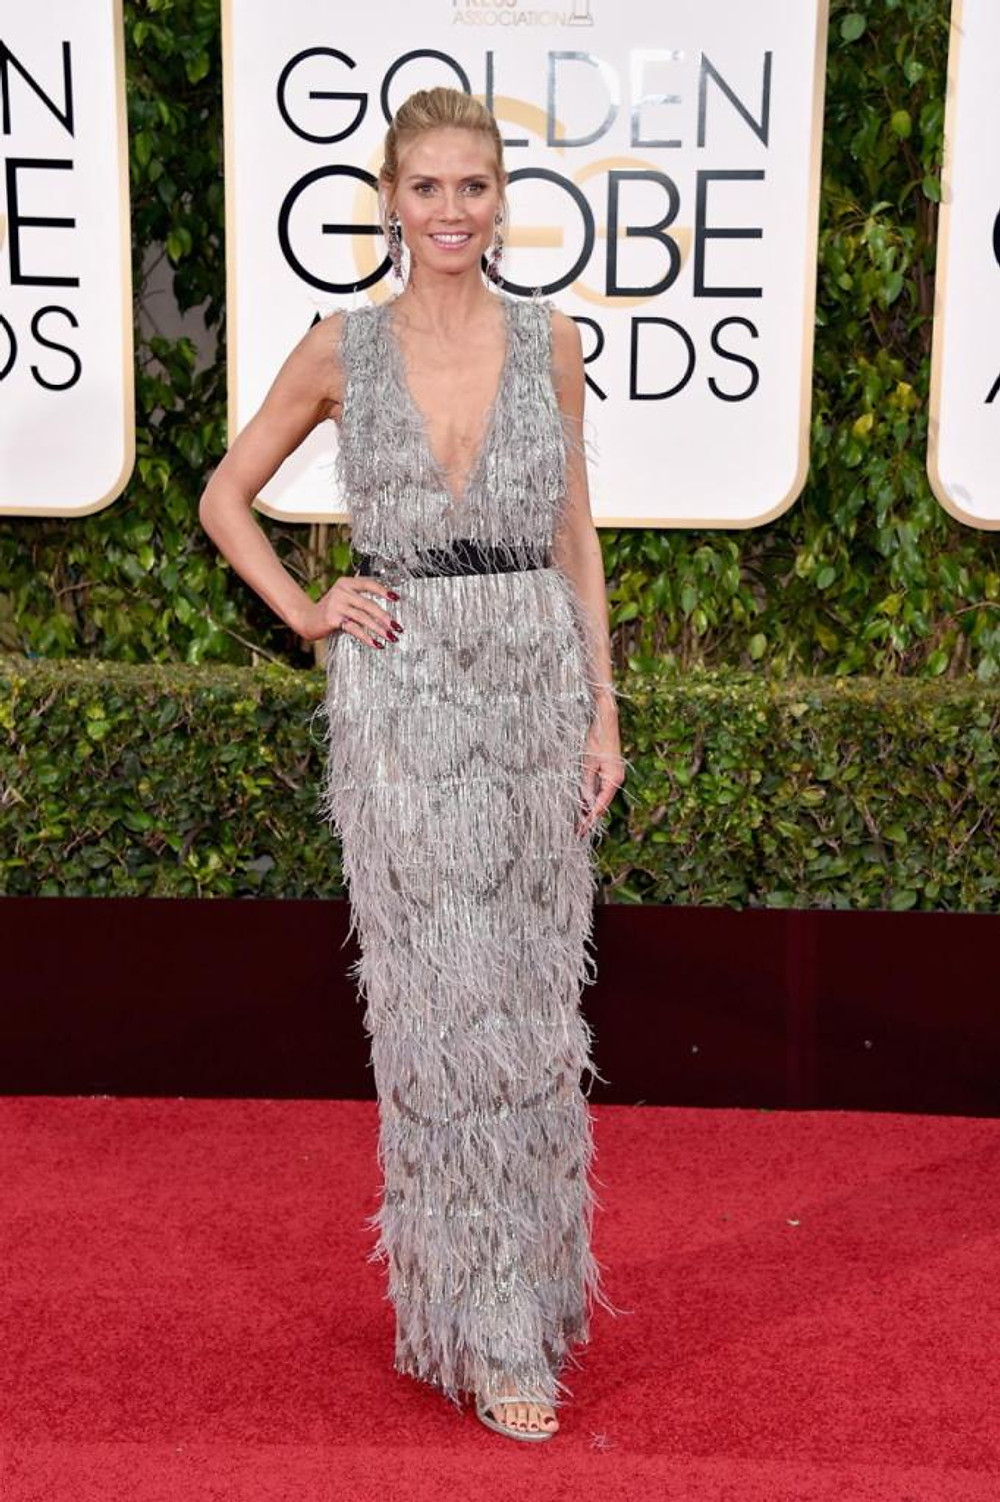 Model Heidi Klum shimmed her way on the red carpet in a beaded and feathered Marchesa gown at the 73rd Annual Golden Globe Awards on Jan. 10, 2016.